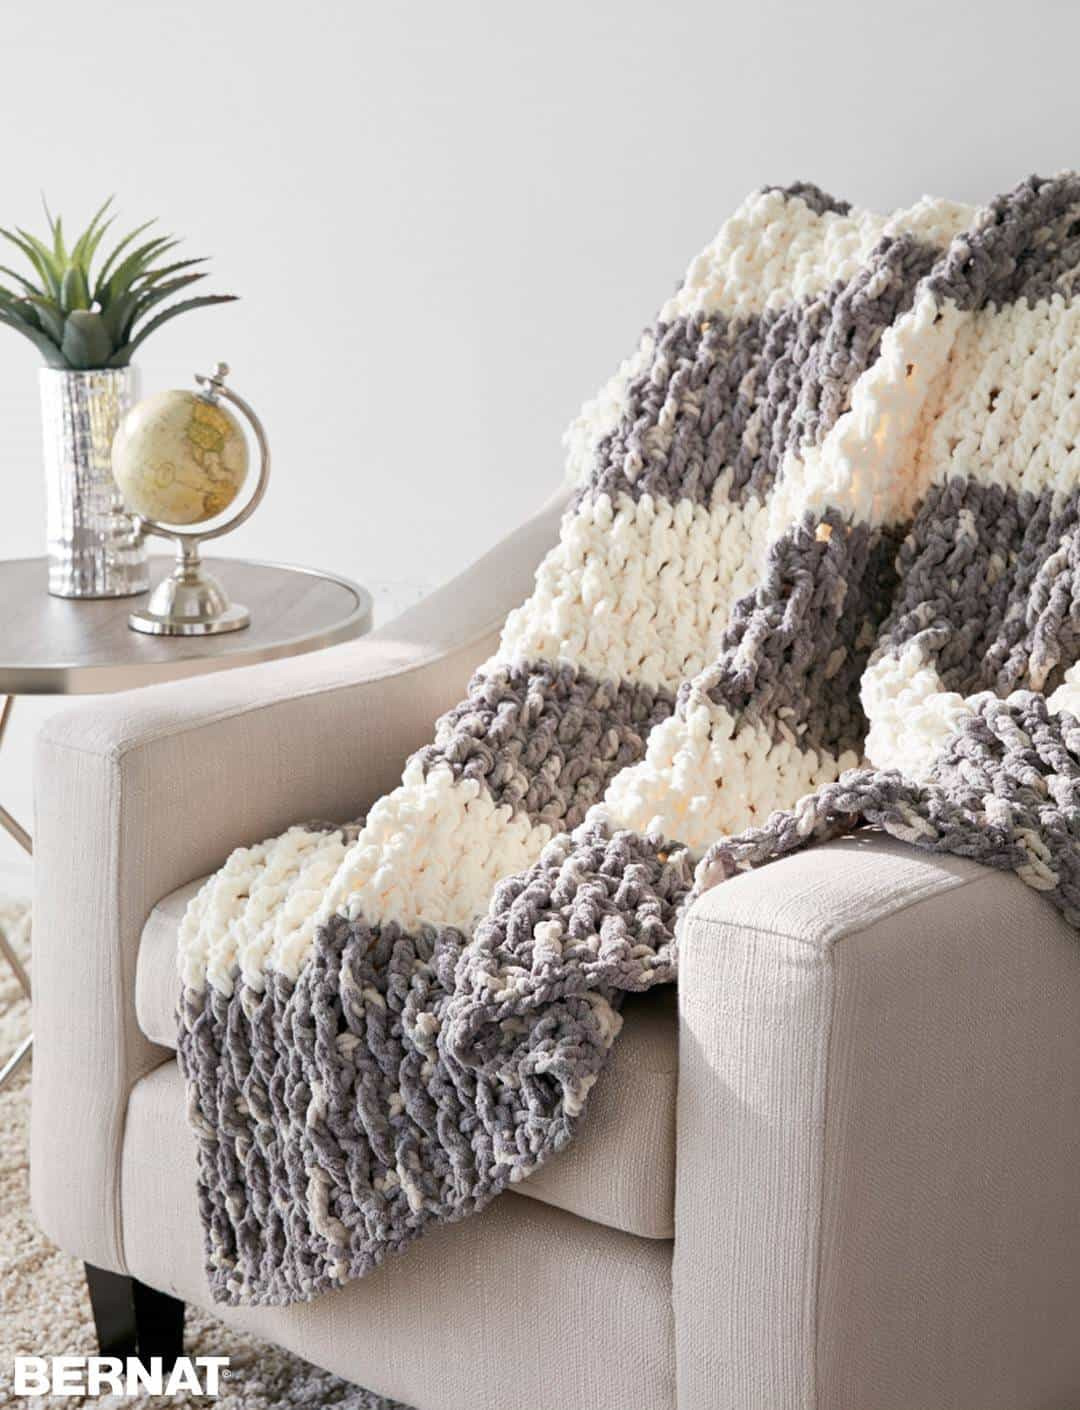 Bernat Blanket Patterns Lovely 20 Awesome Crochet Blanket Patterns for Beginners Ideal Me Of Perfect 47 Photos Bernat Blanket Patterns